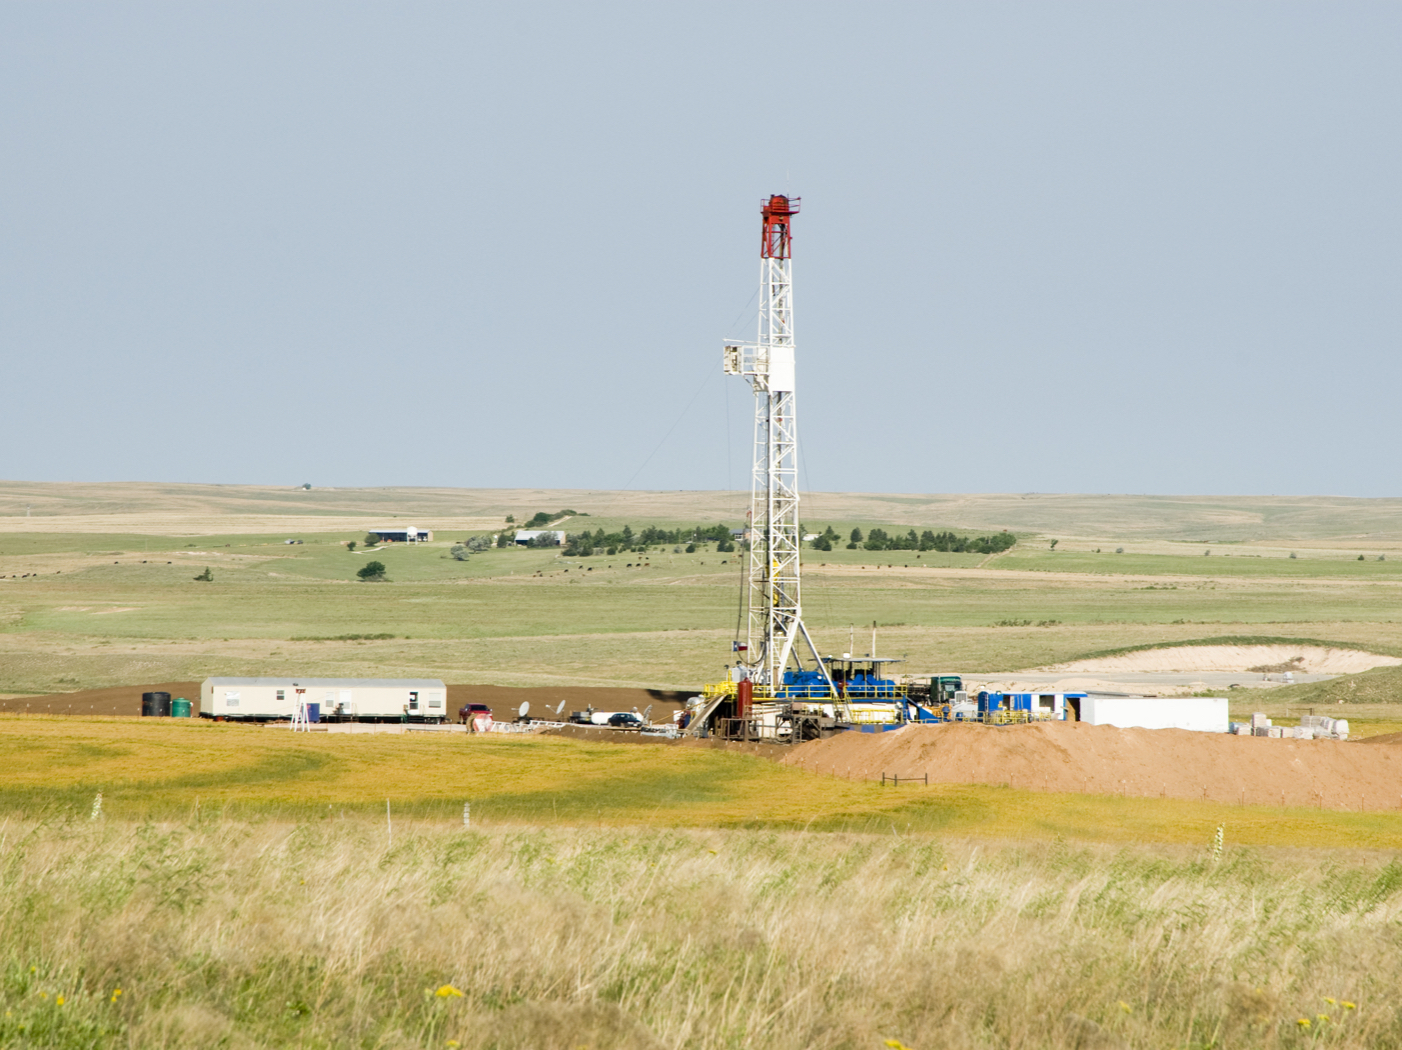 An oil well towering above a mostly empty plain of grass